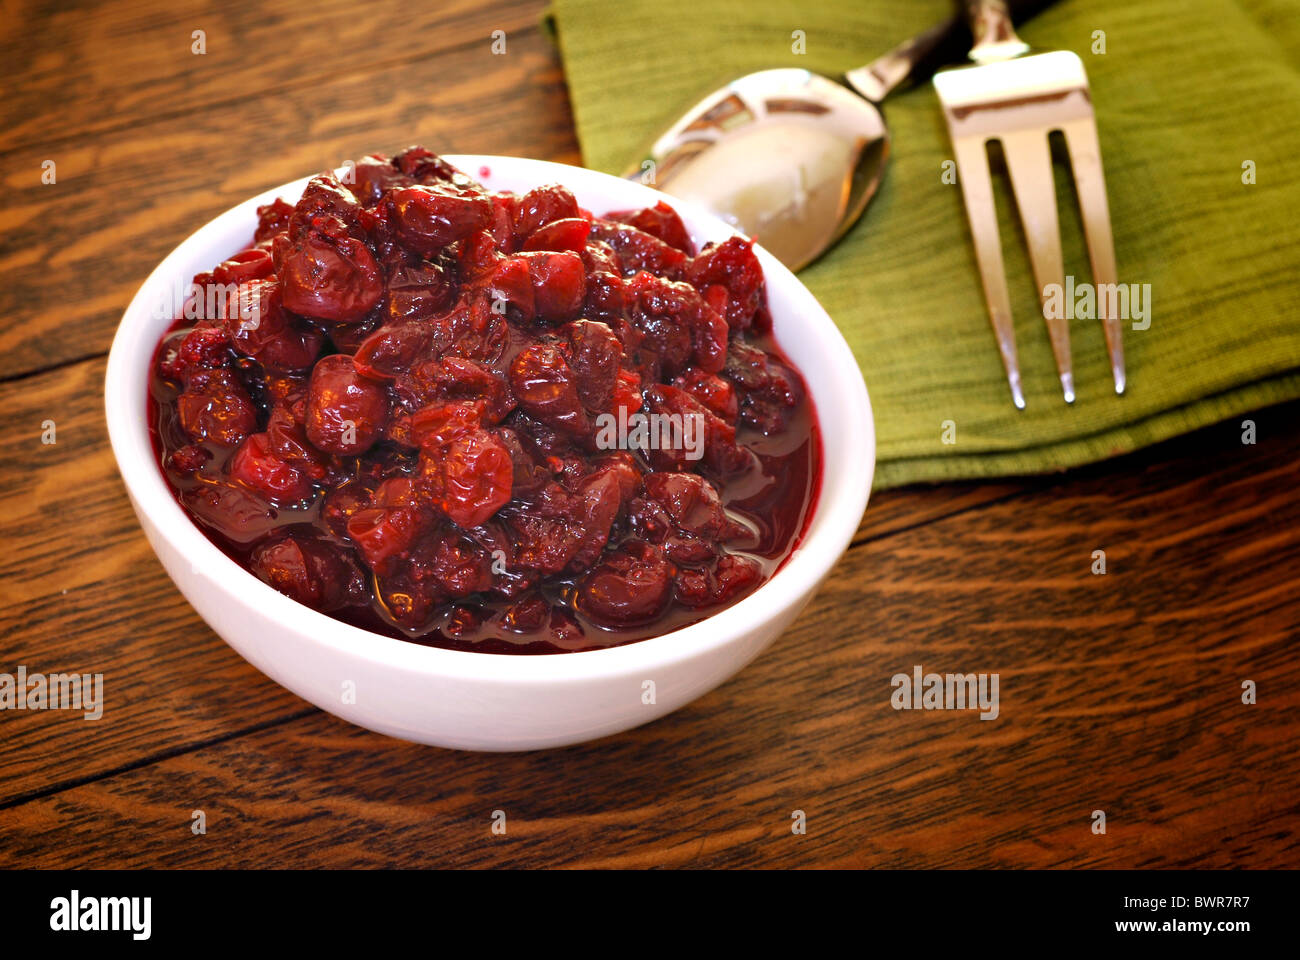 Bowl of fresh homemade cranberry sauce on antique oak table Stock Photo